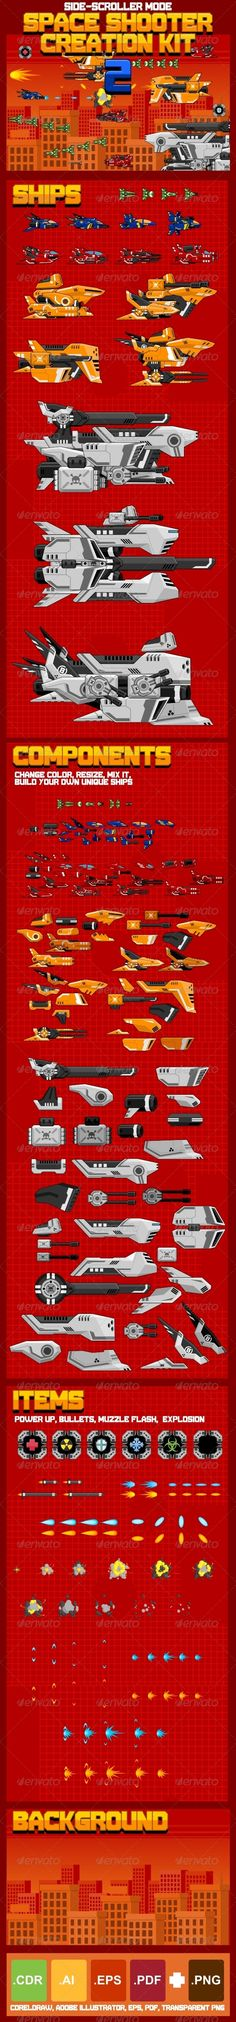 Space Shooter Creation Kit 2 Download here: https://graphicriver.net/item/space-shooter-creation-kit-2/7021806?ref=KlitVogli